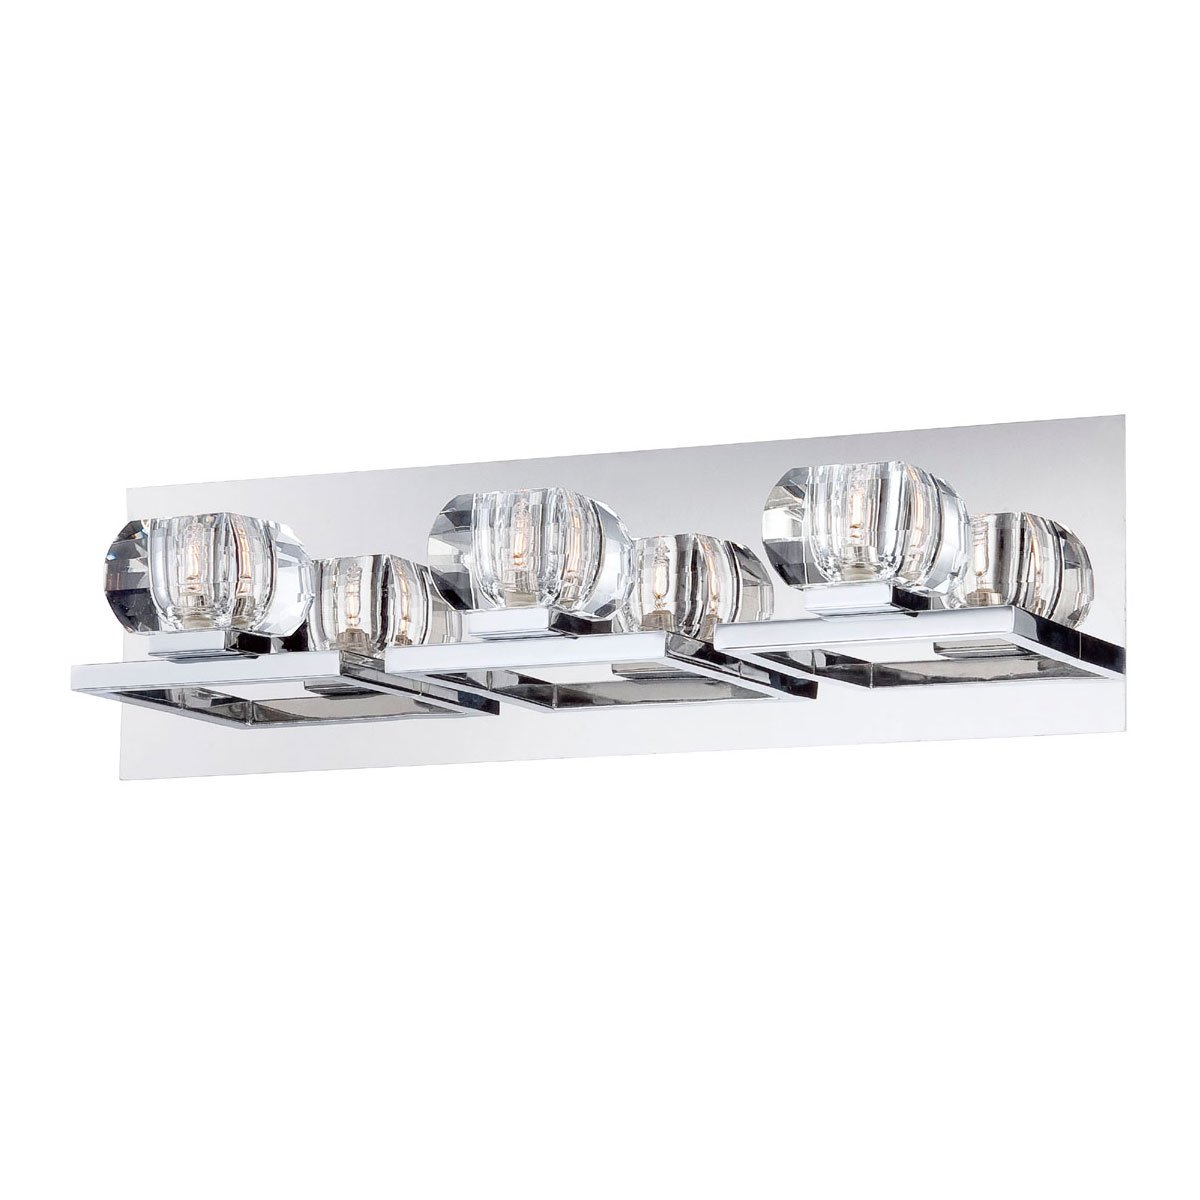 Eurofase Casa Squared Faceted Crystal Orbs Bathroom Vanity Light, Chrome Finish, Halogen Light, 19.25 Inches Wide – Model 26357-010